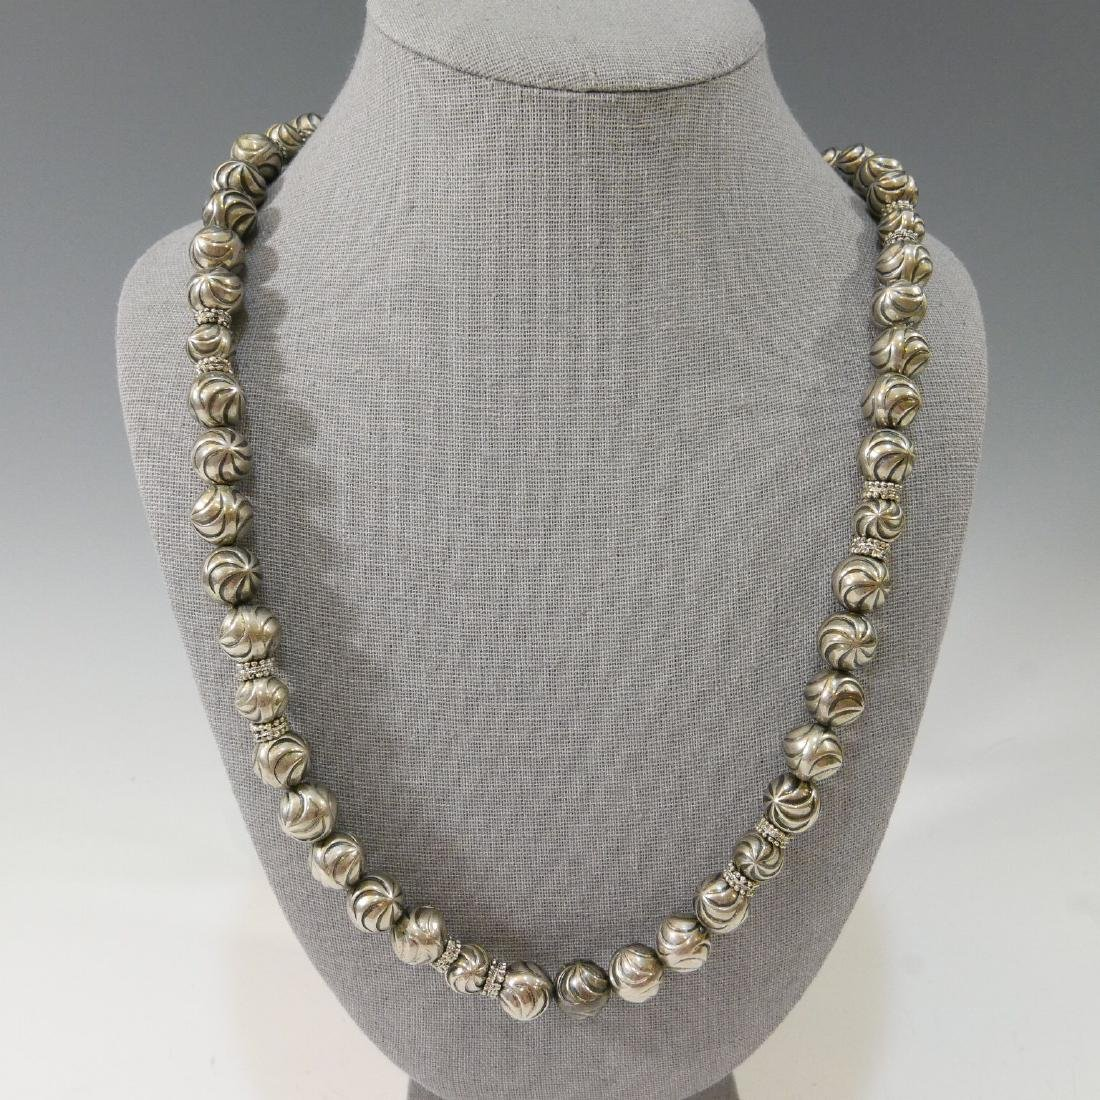 STERLING SILVER BEADS NECKLACE